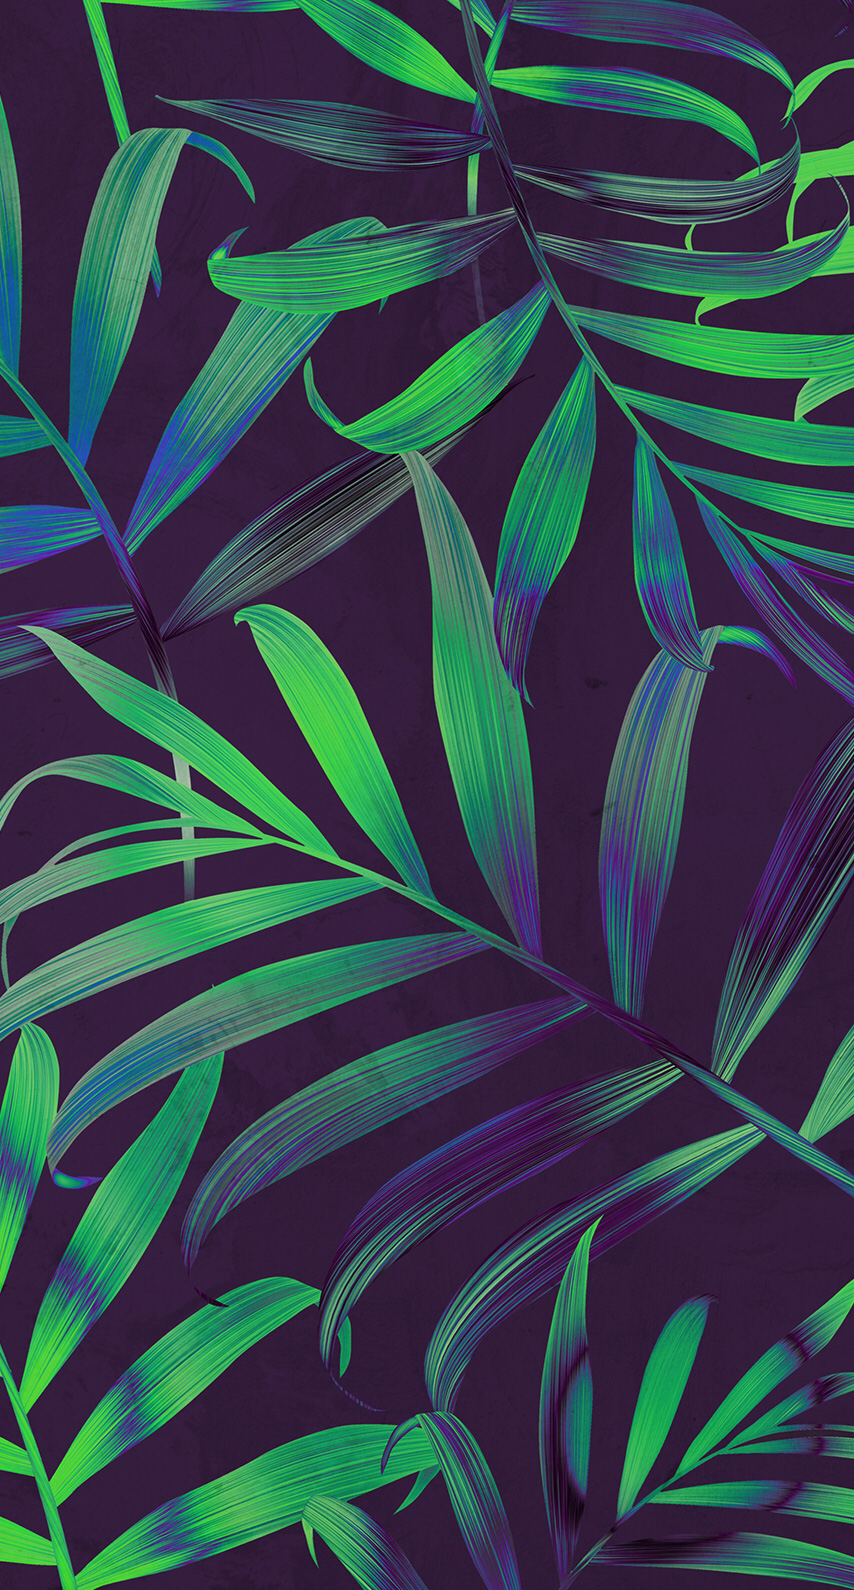 Iphone Wallpaper Plants Tropical Forest Green 6 Tumblr